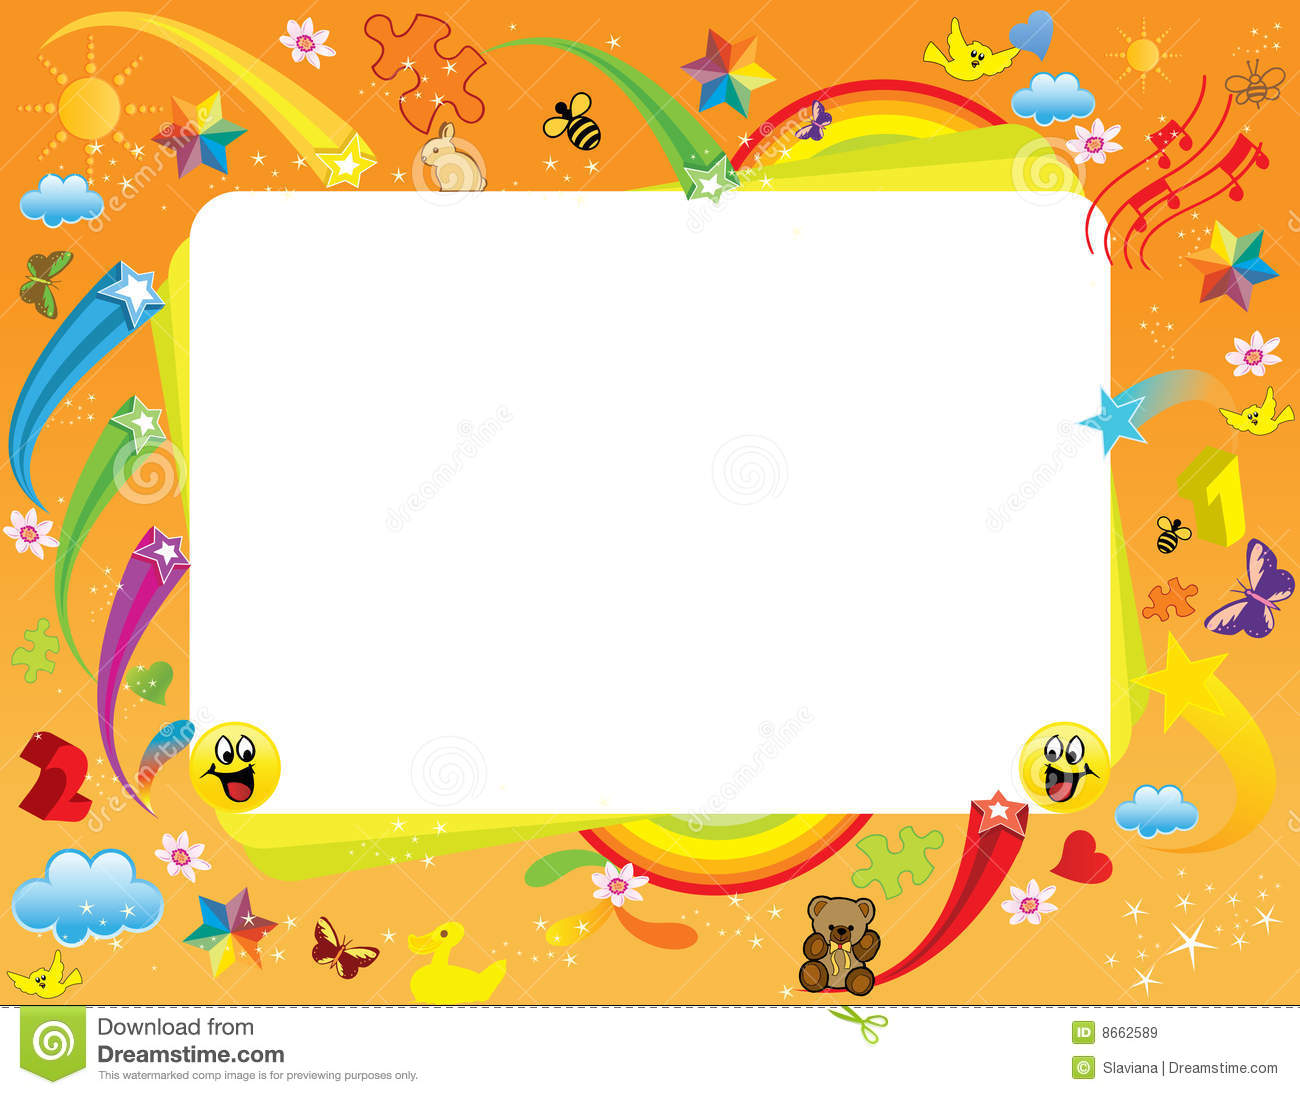 Fun Frame Royalty Free Stock Images - Image: 8662589